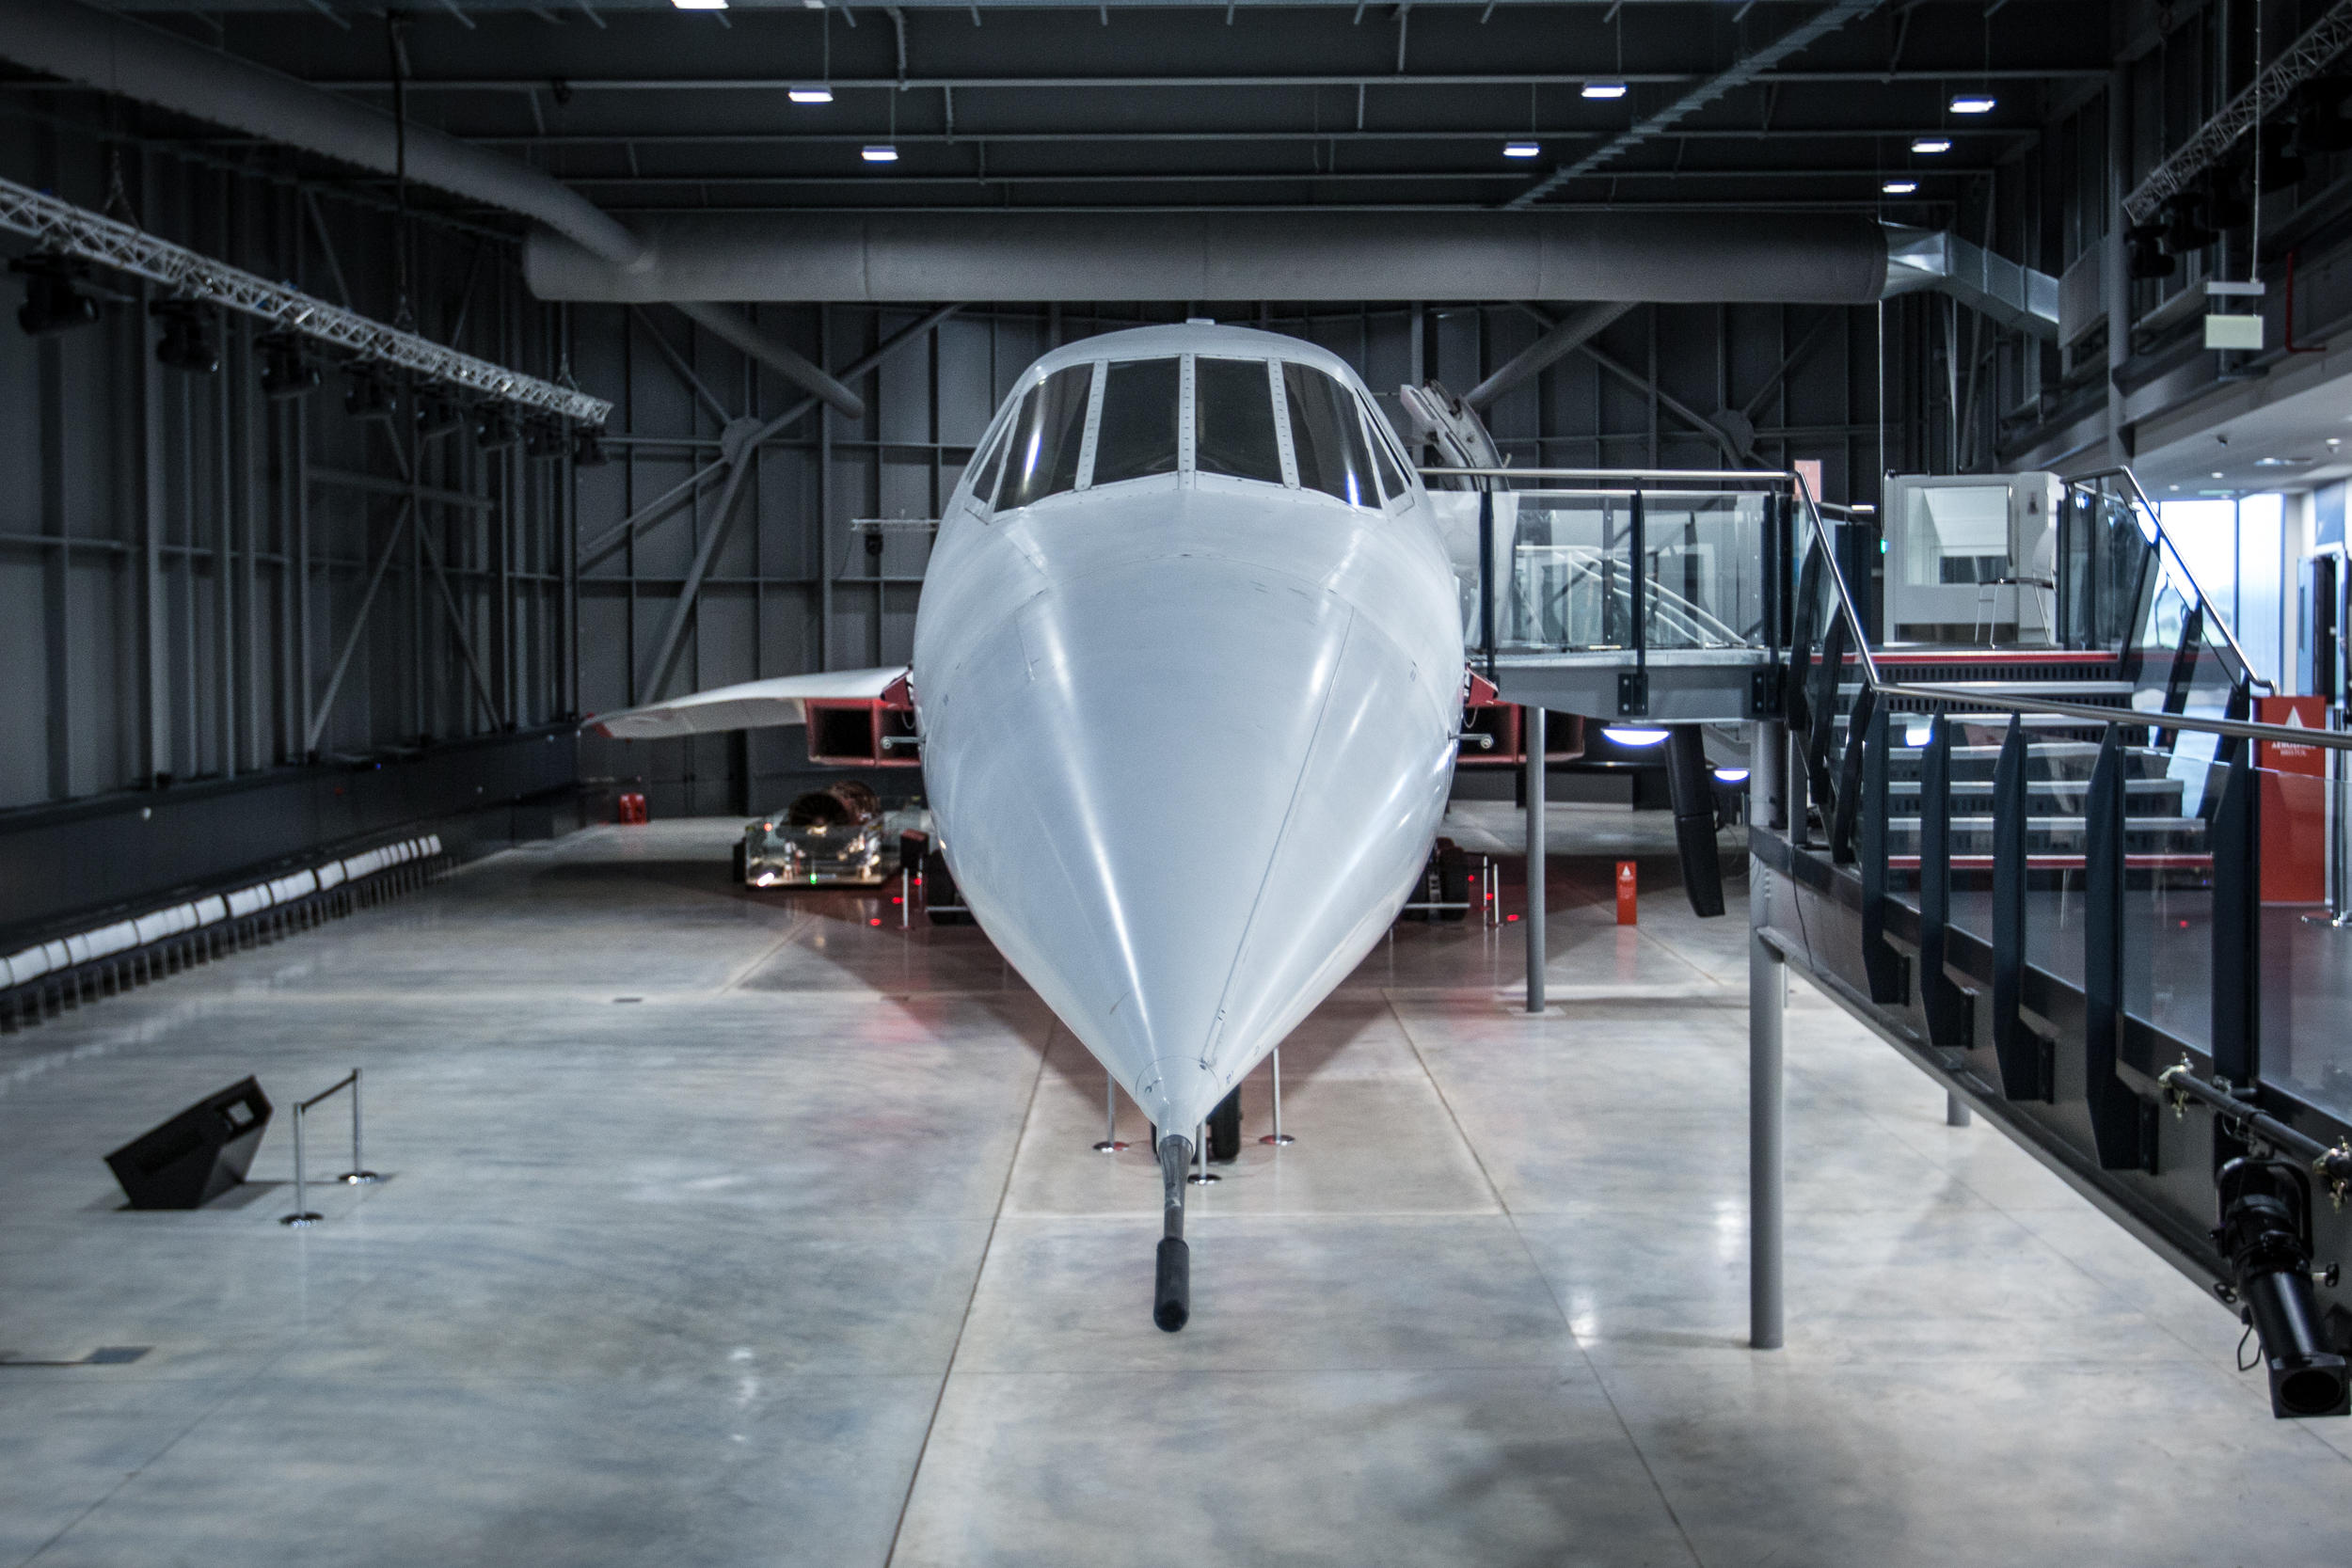 A Concorde aircraft in a museum in Bristol, England